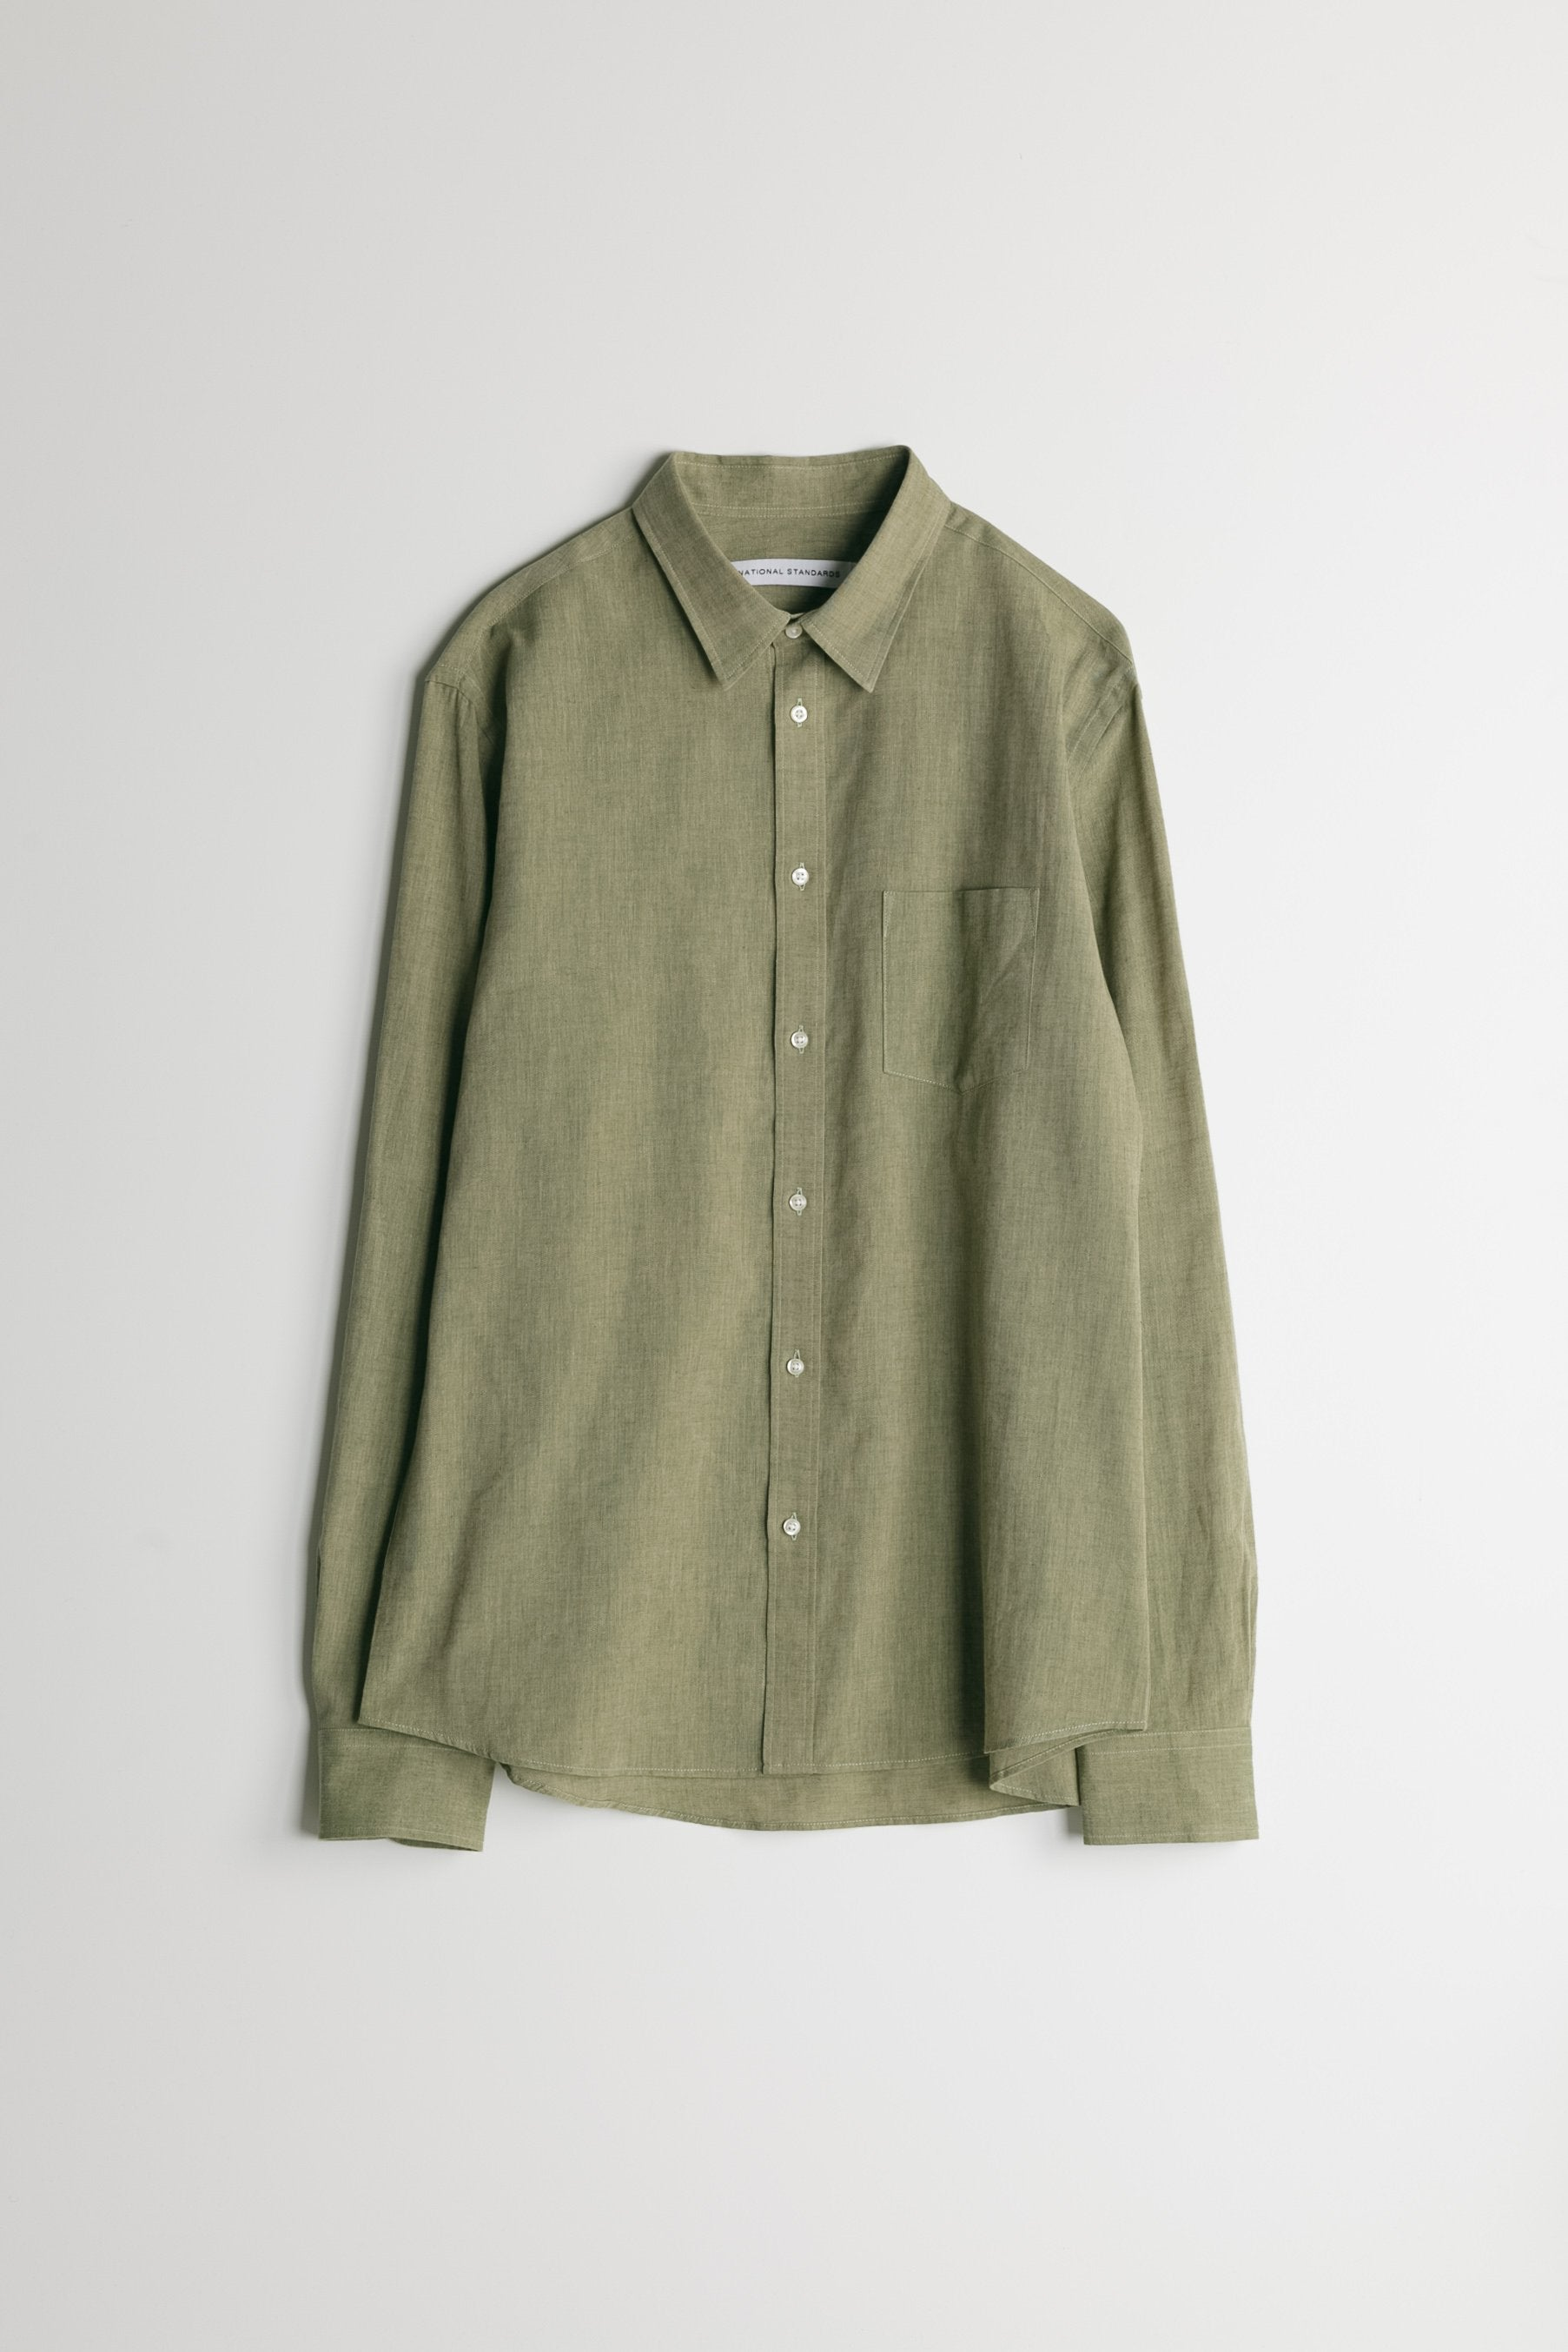 japanese-natural-chambray-in-green 05